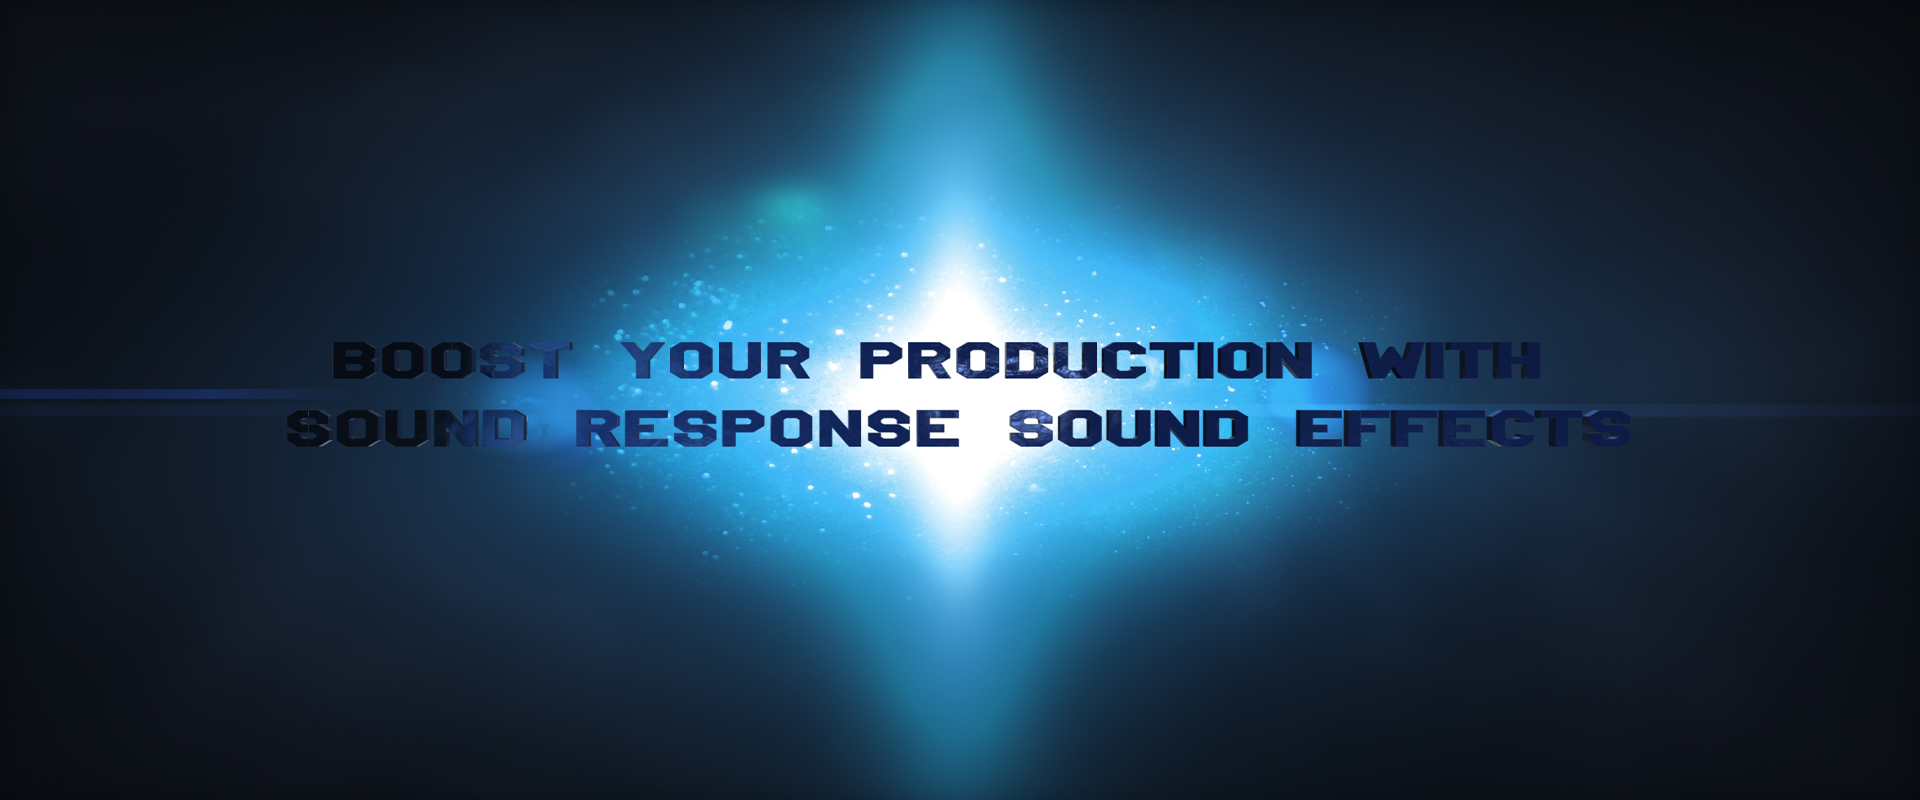 Sound Response Sound Libraries | Royalty Free Sound Effects & Samples